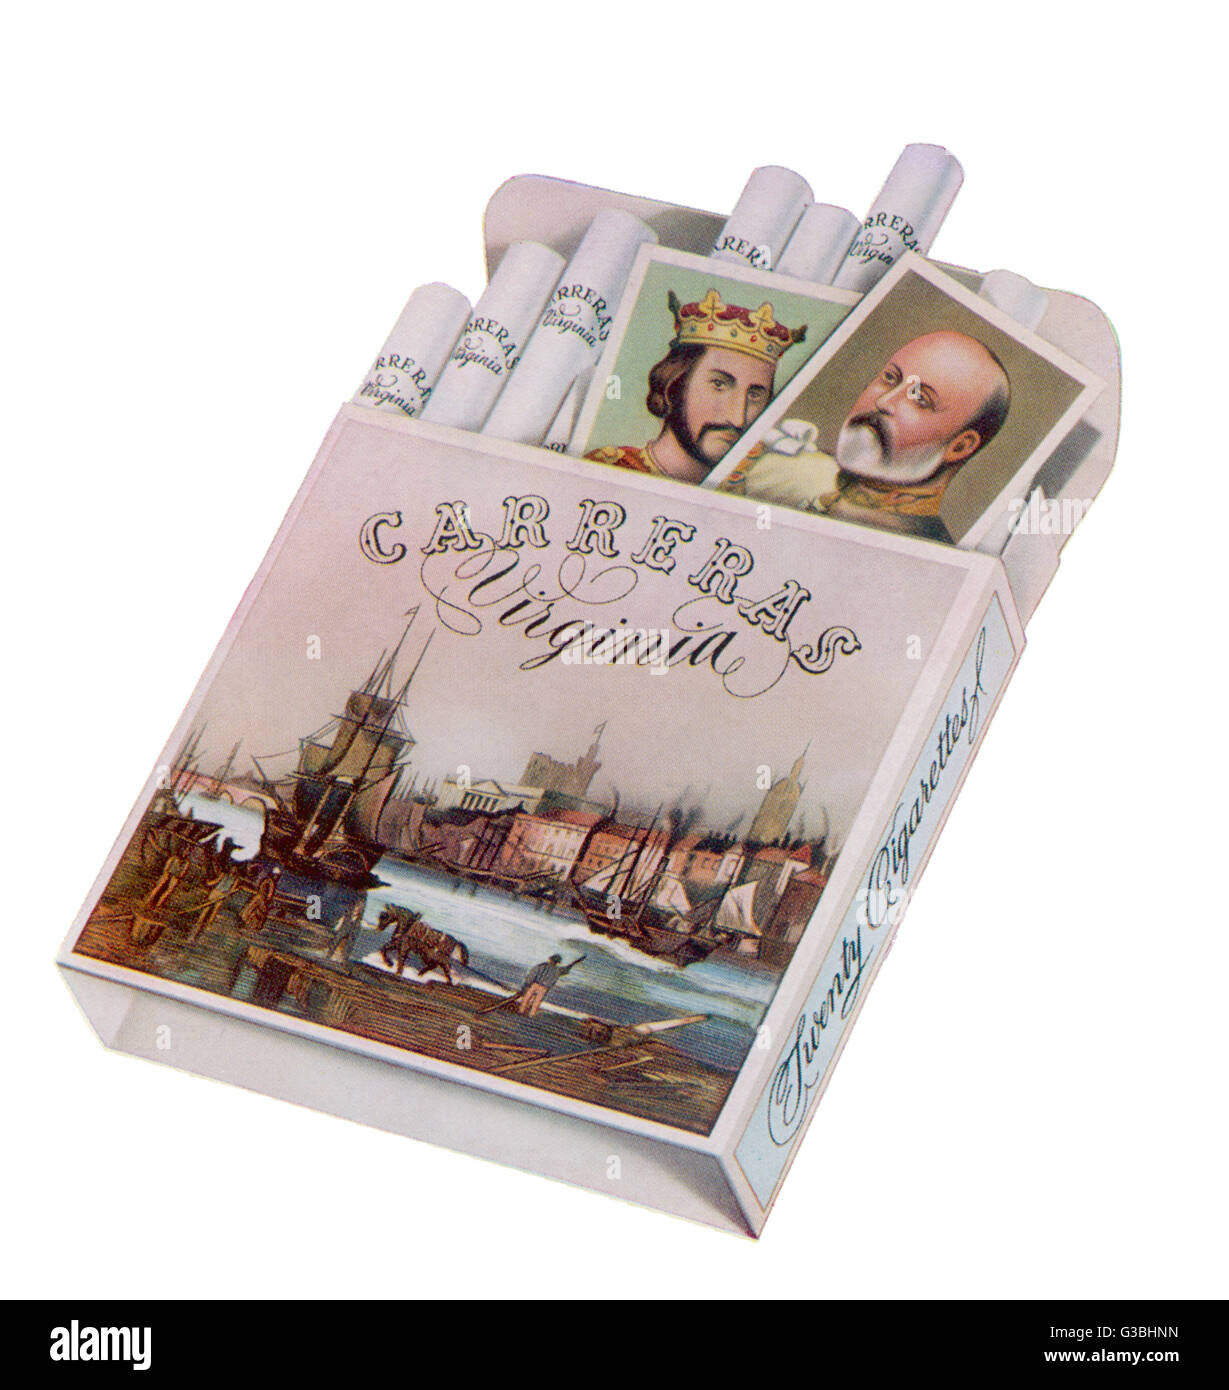 Carreras Virginia cigarettes -  the packet contains  cigarette cards       Date: 1935 - Stock Image